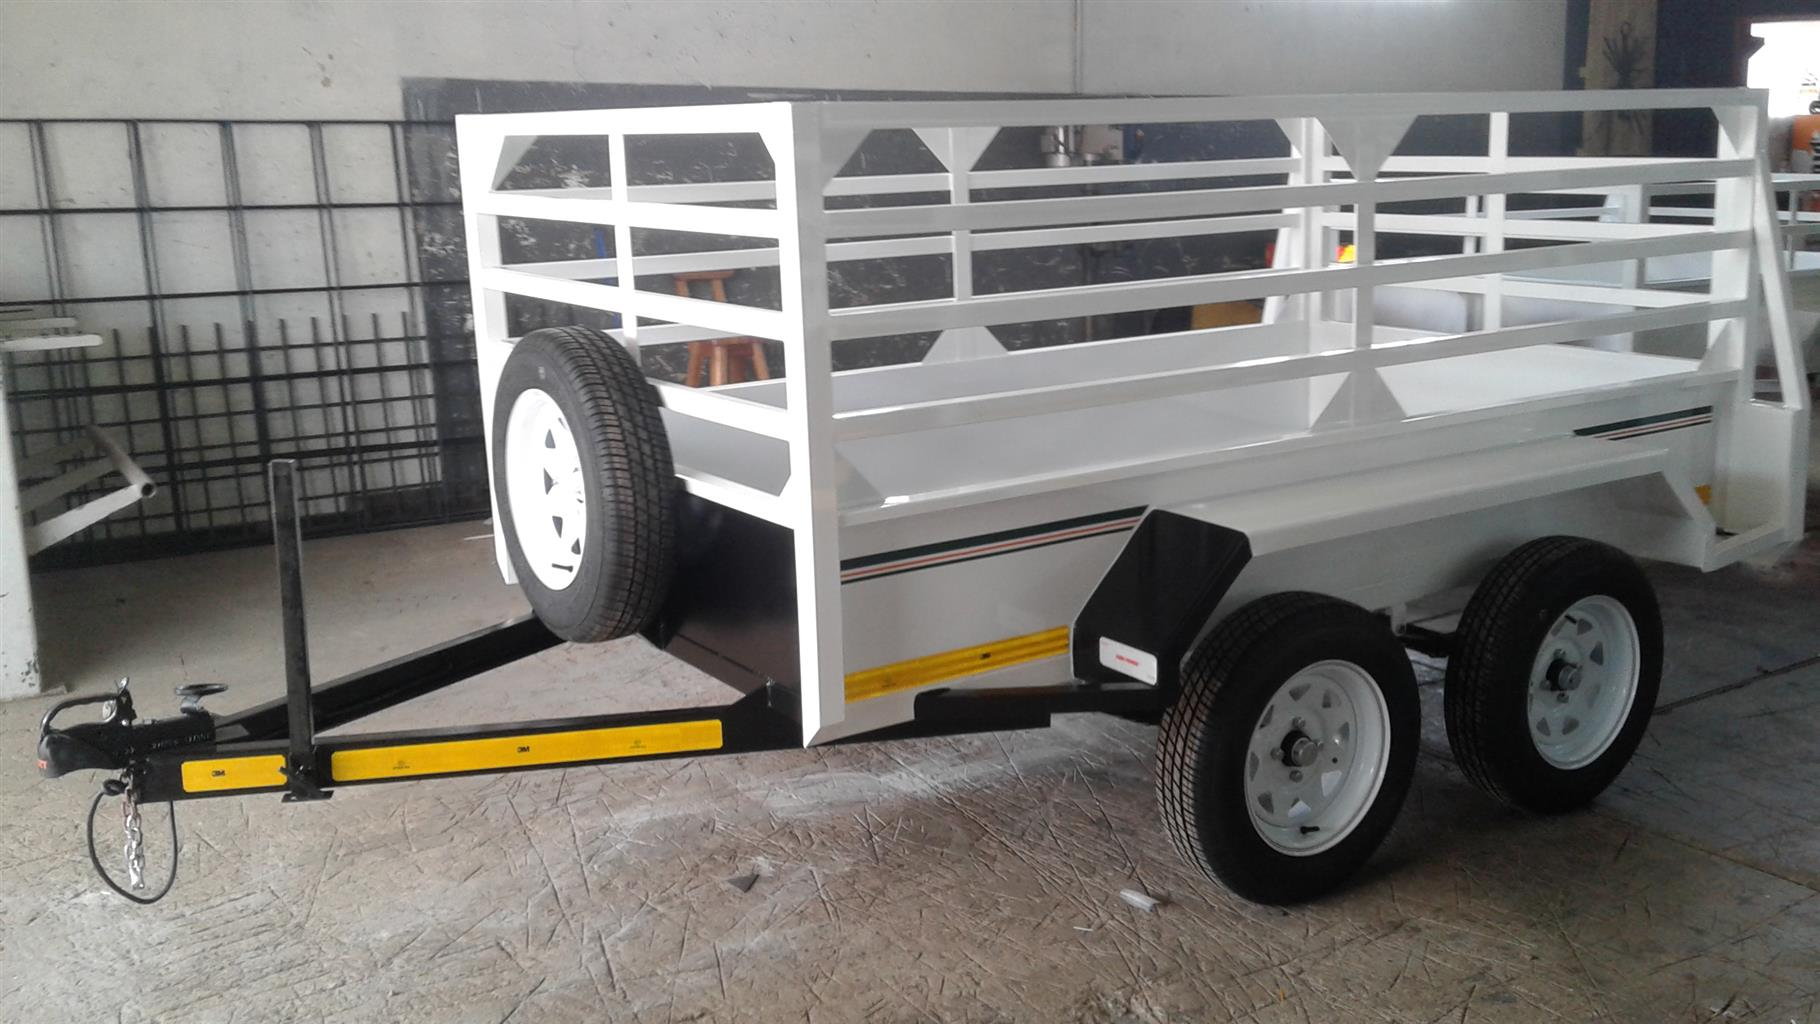 2.4M DOUBLE AXLE UTILITY TRAILER WITH BRAKES FOR SALE, ON ORDER ONLY!